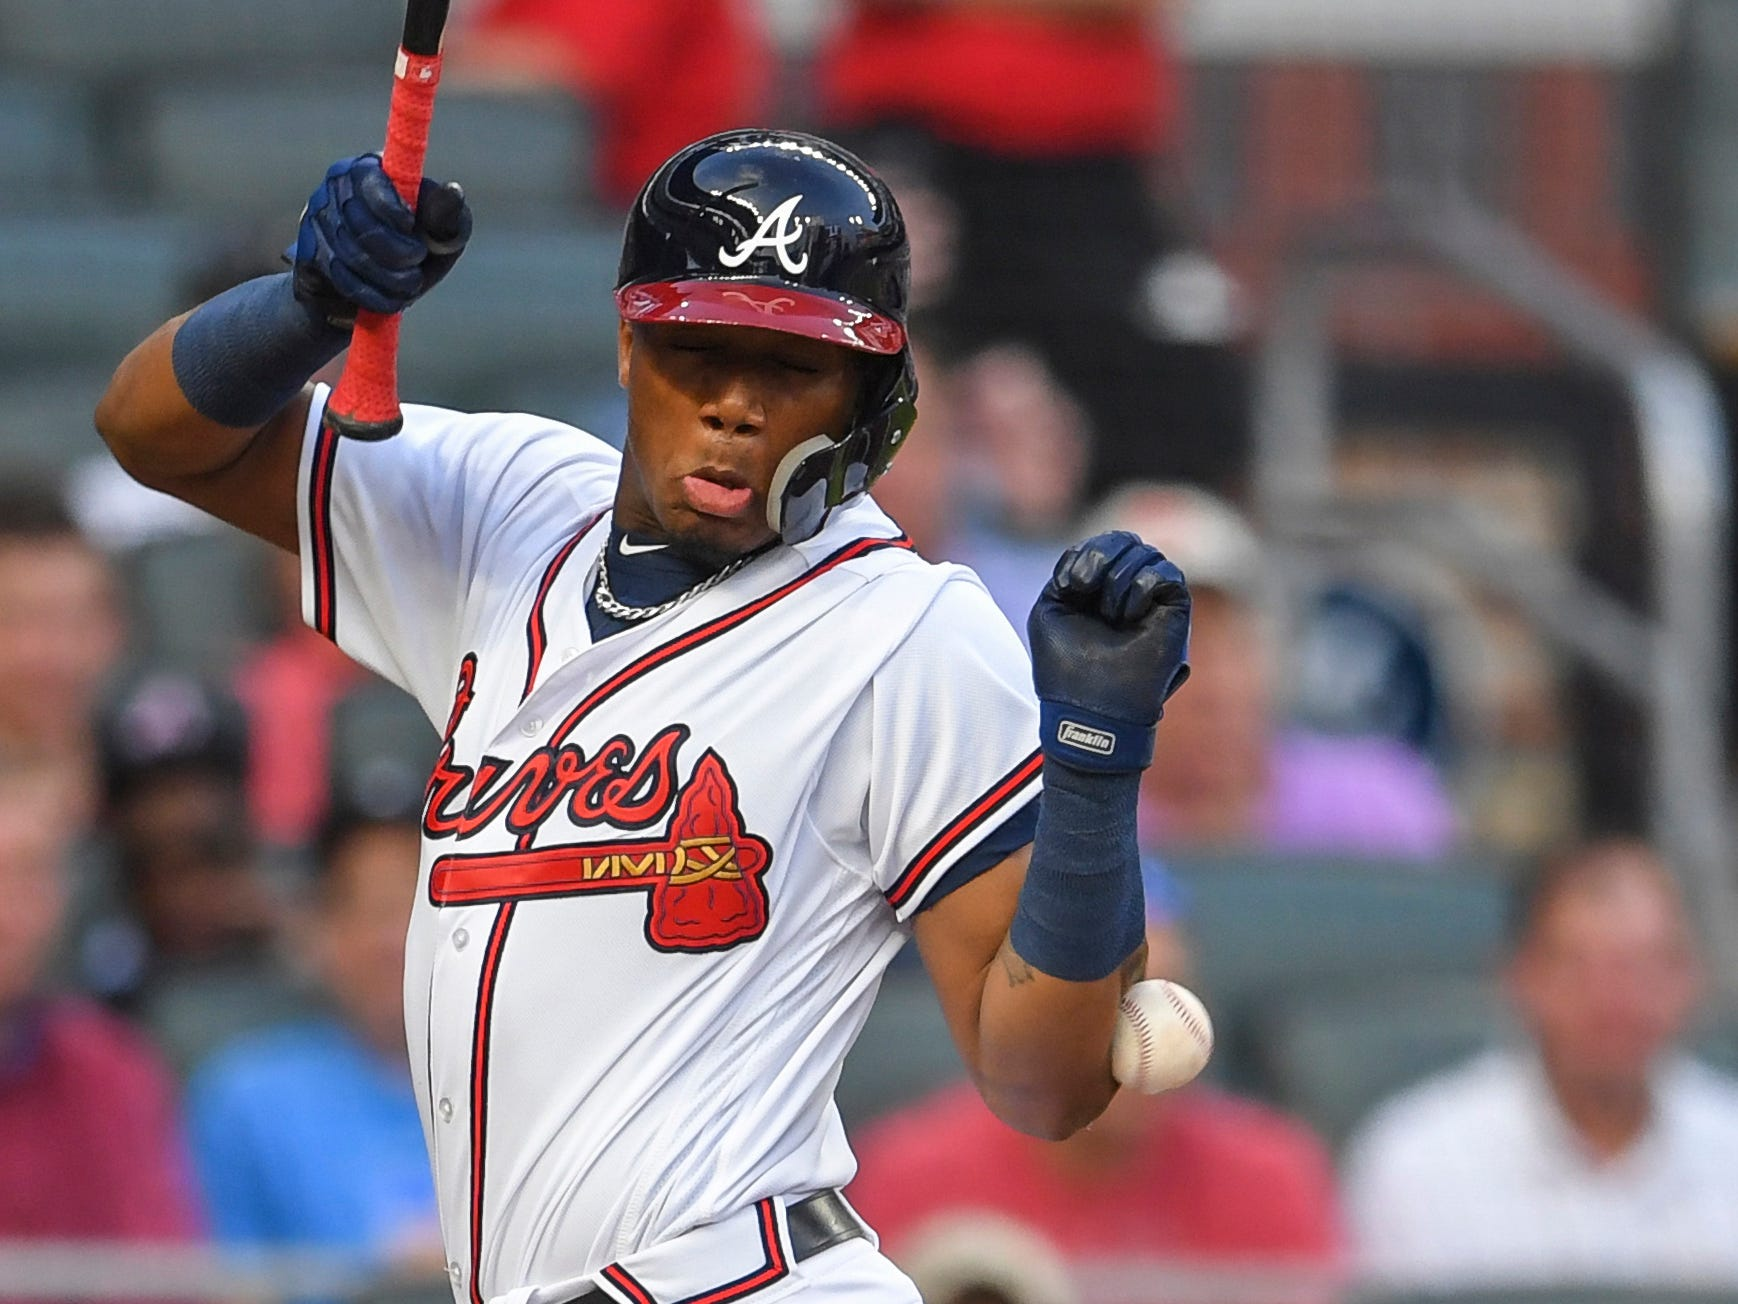 Ronald Acuna Jr. is hit by the first pitch of the game against the Marlins.